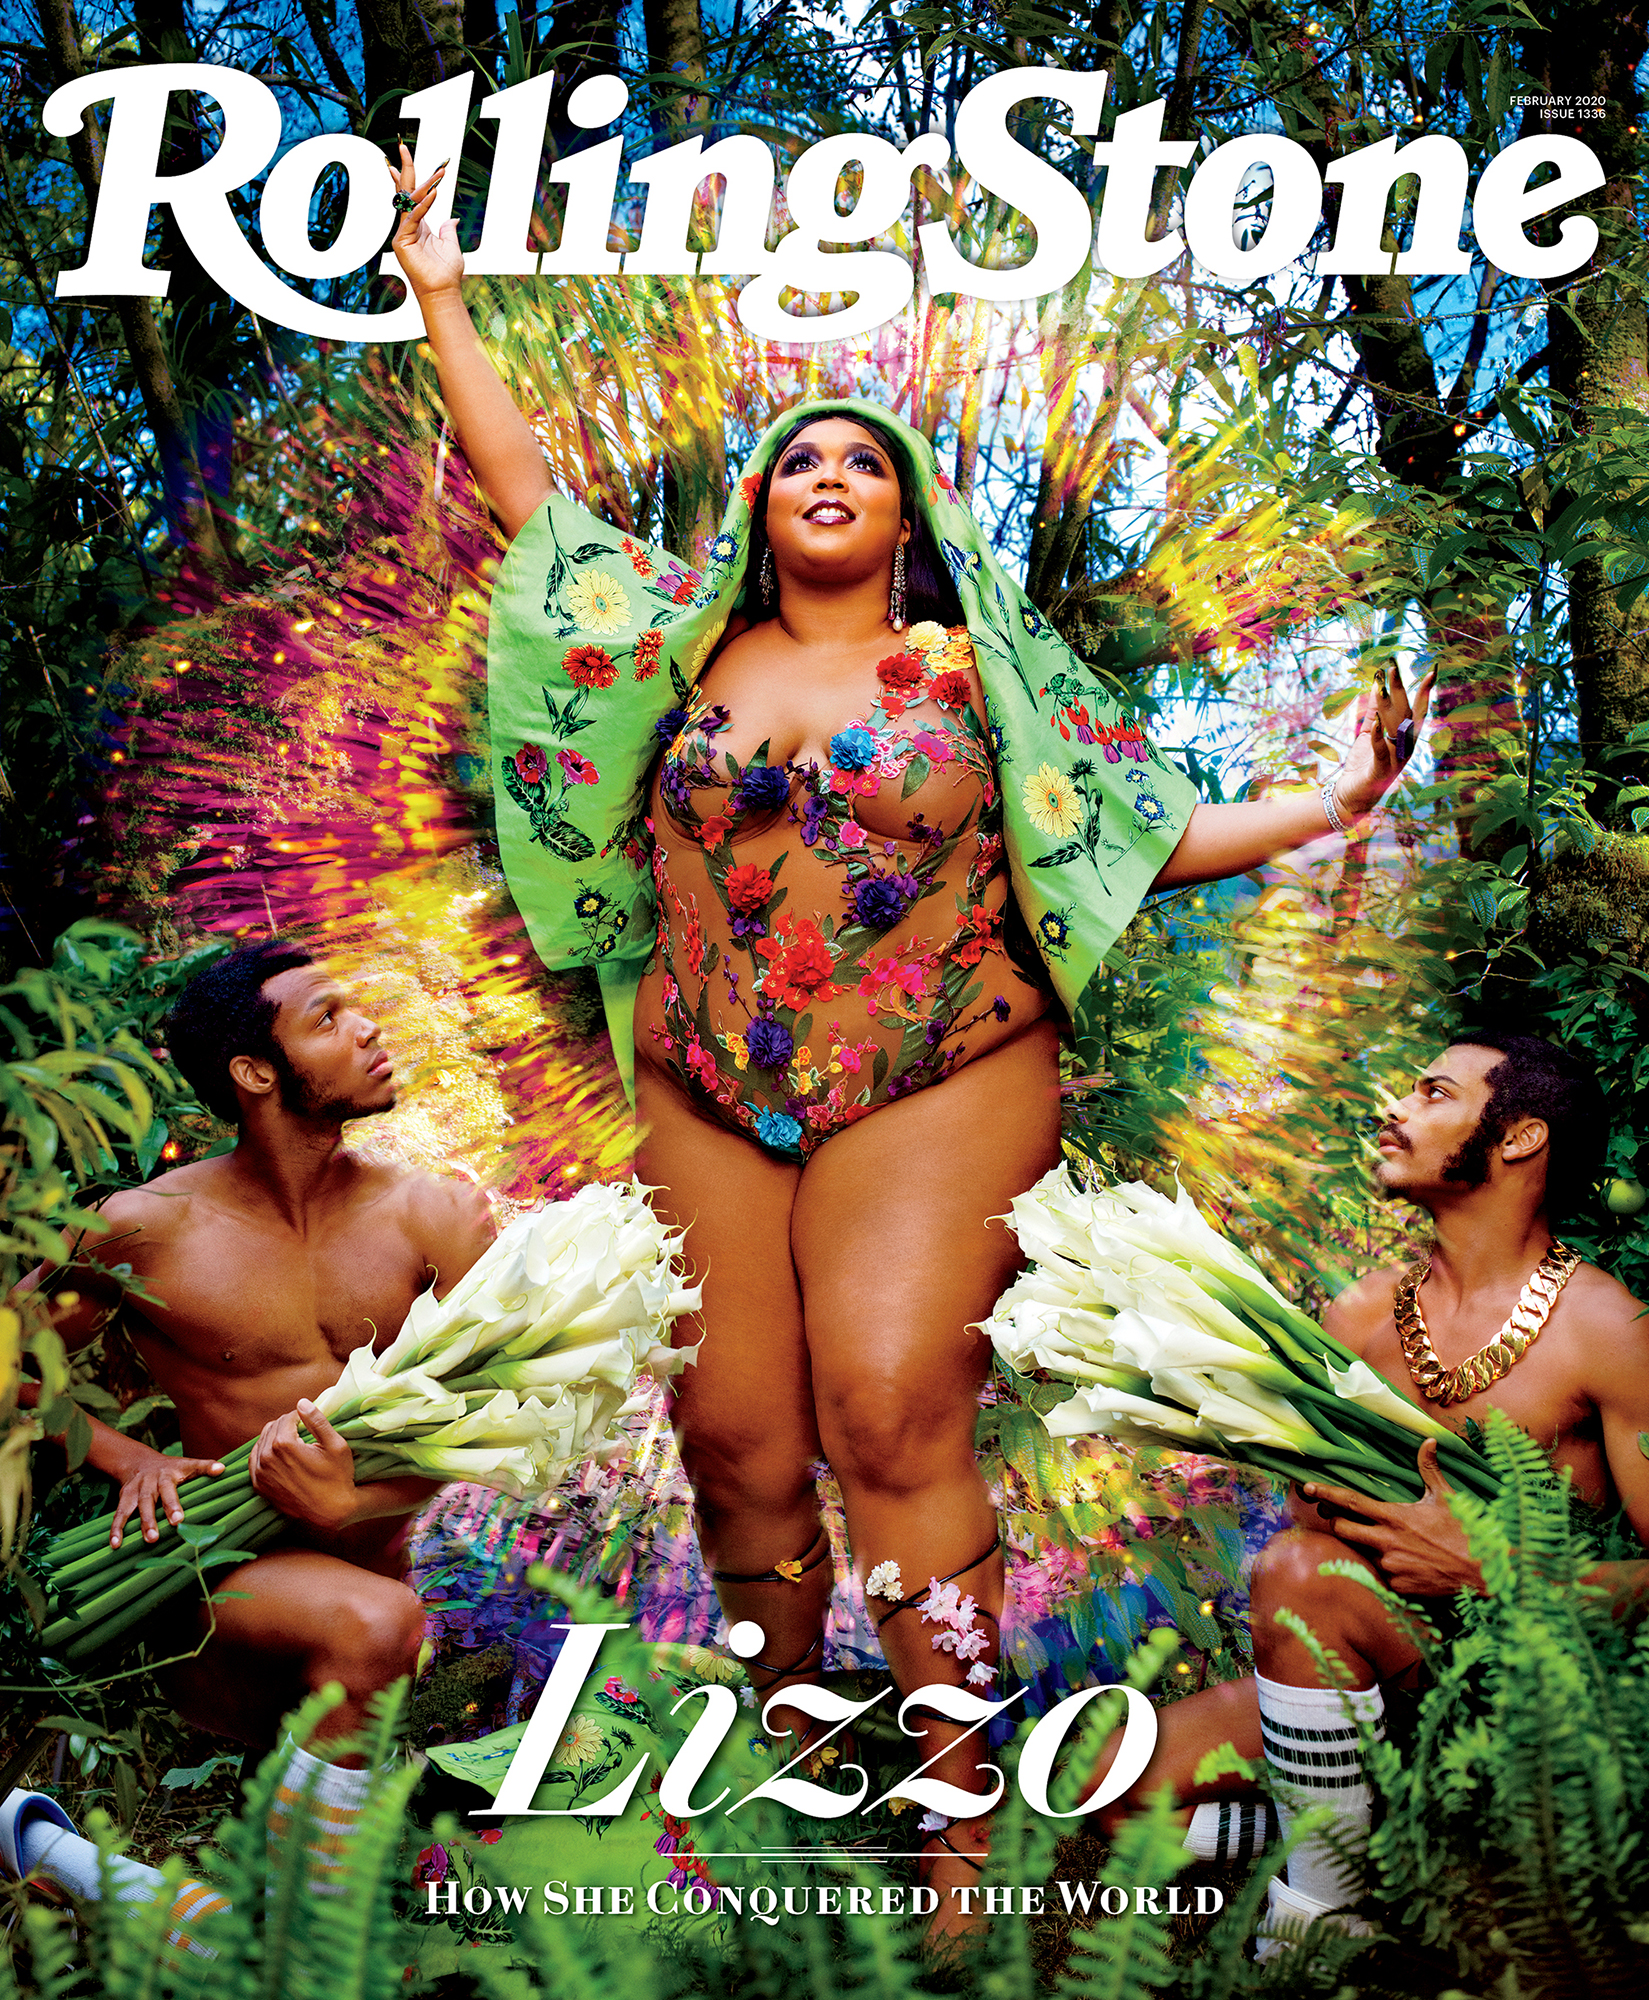 Lizzo Preaches Body-Positivity As She Covers Rolling Stone's Latest Issue